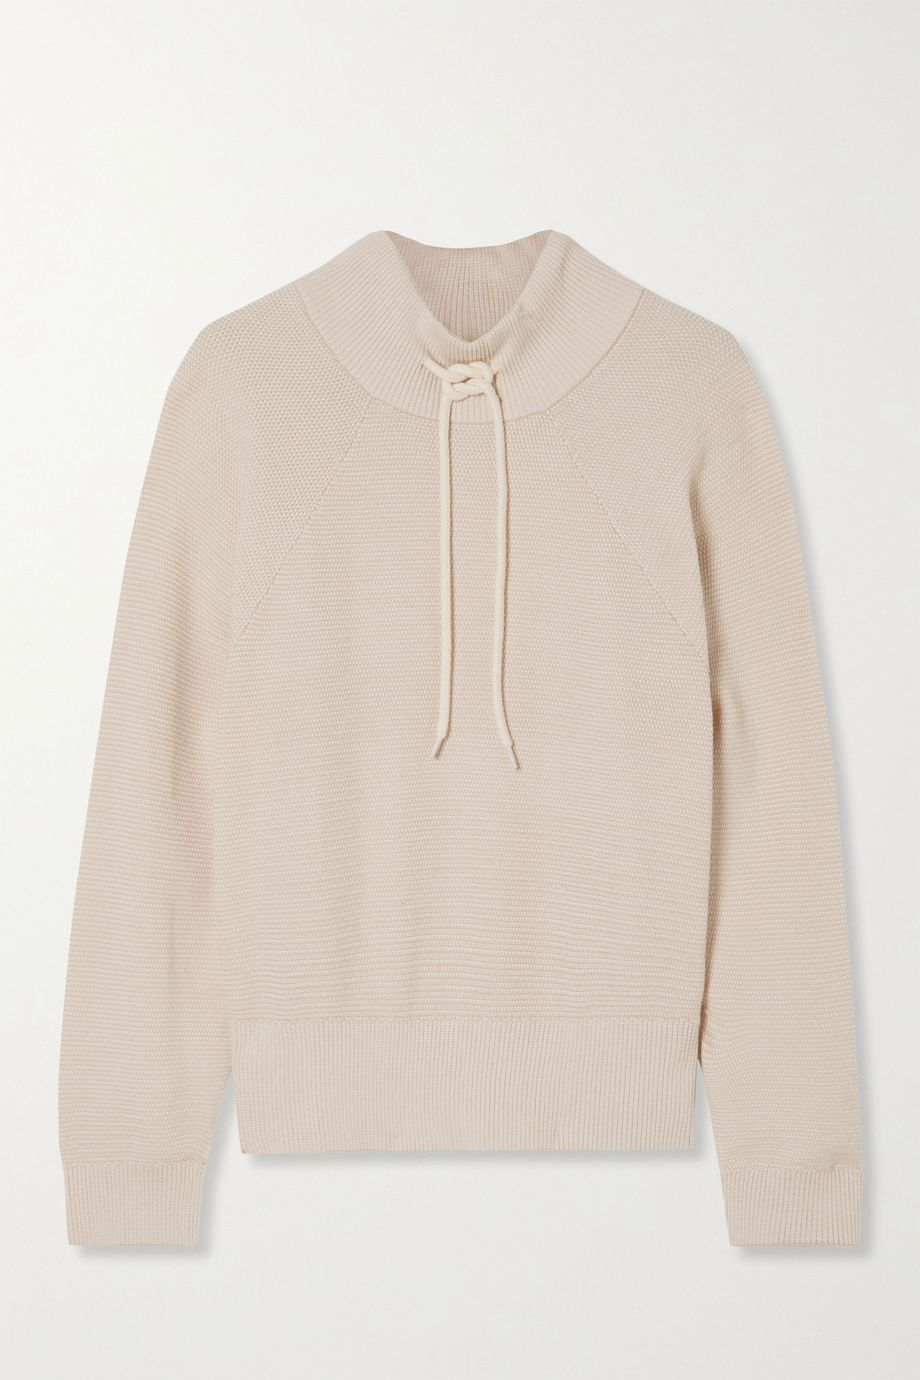 Varley Maceo 2.0 cotton-piqué sweatshirt